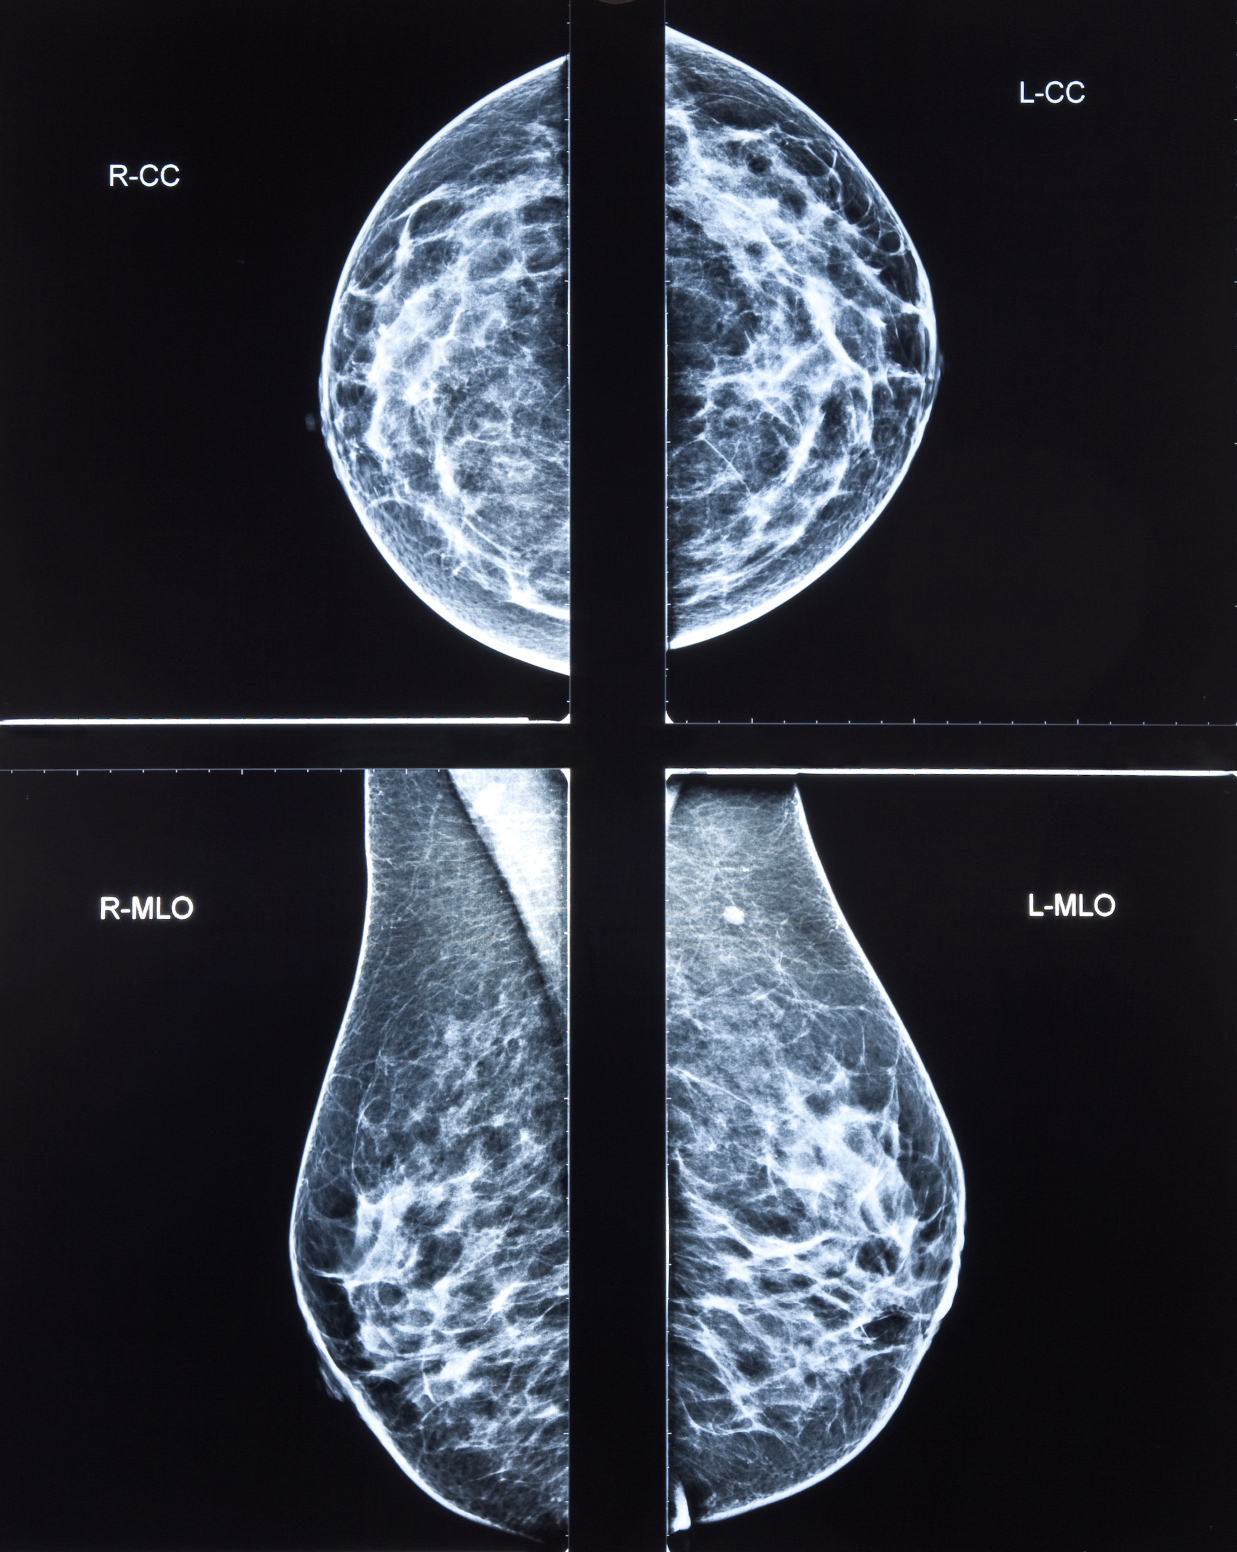 breast tomosynthesis a breast cancer screening tool Tomosynthesis is a method of breast screening that appears to be more reliable than a regular mammogram it is a type of x-ray that provides a 3-d image of the breasts.